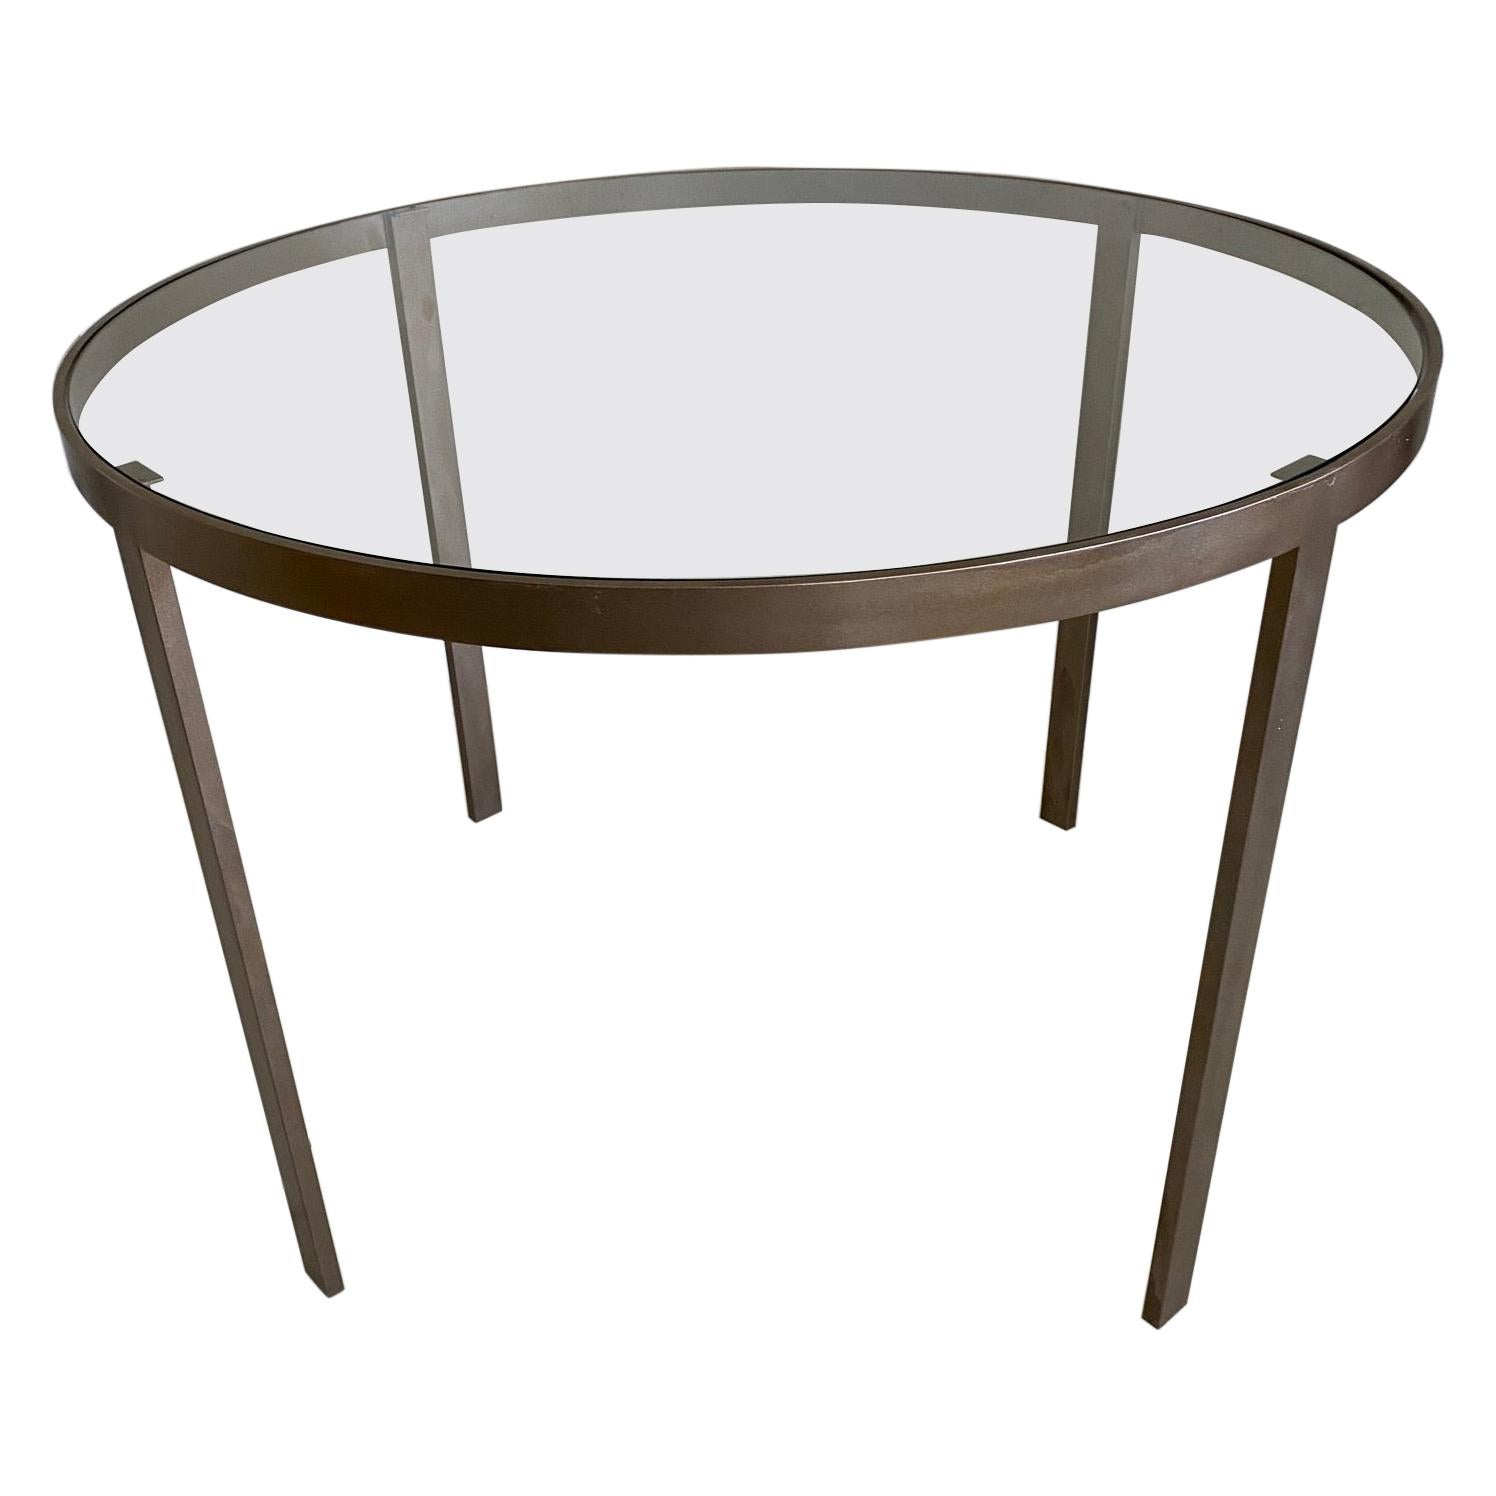 Round Metal and Glass Top Dining or Conference Table